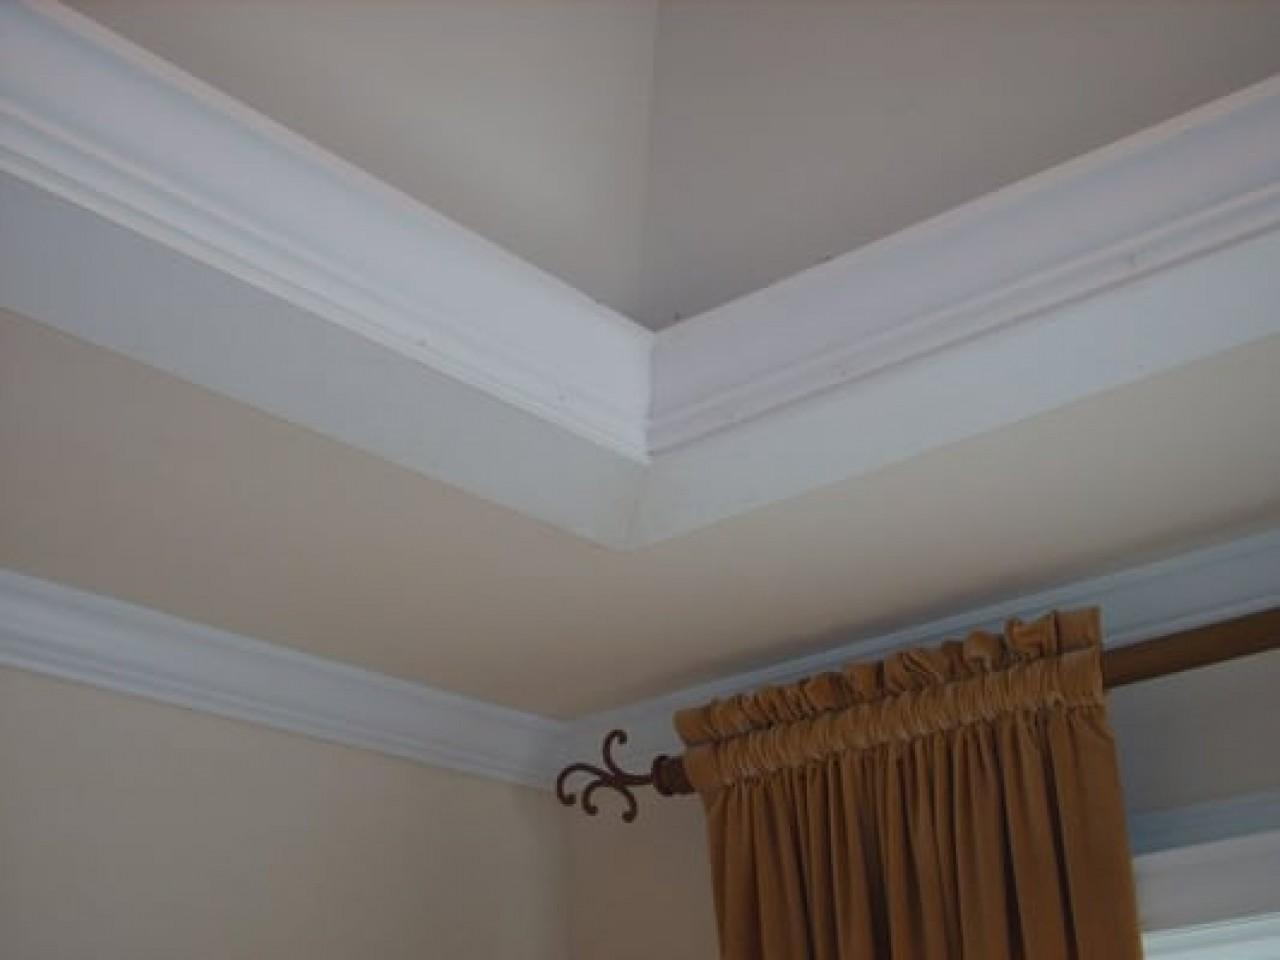 Recessed Ceiling Crown Molding Moulding Tray